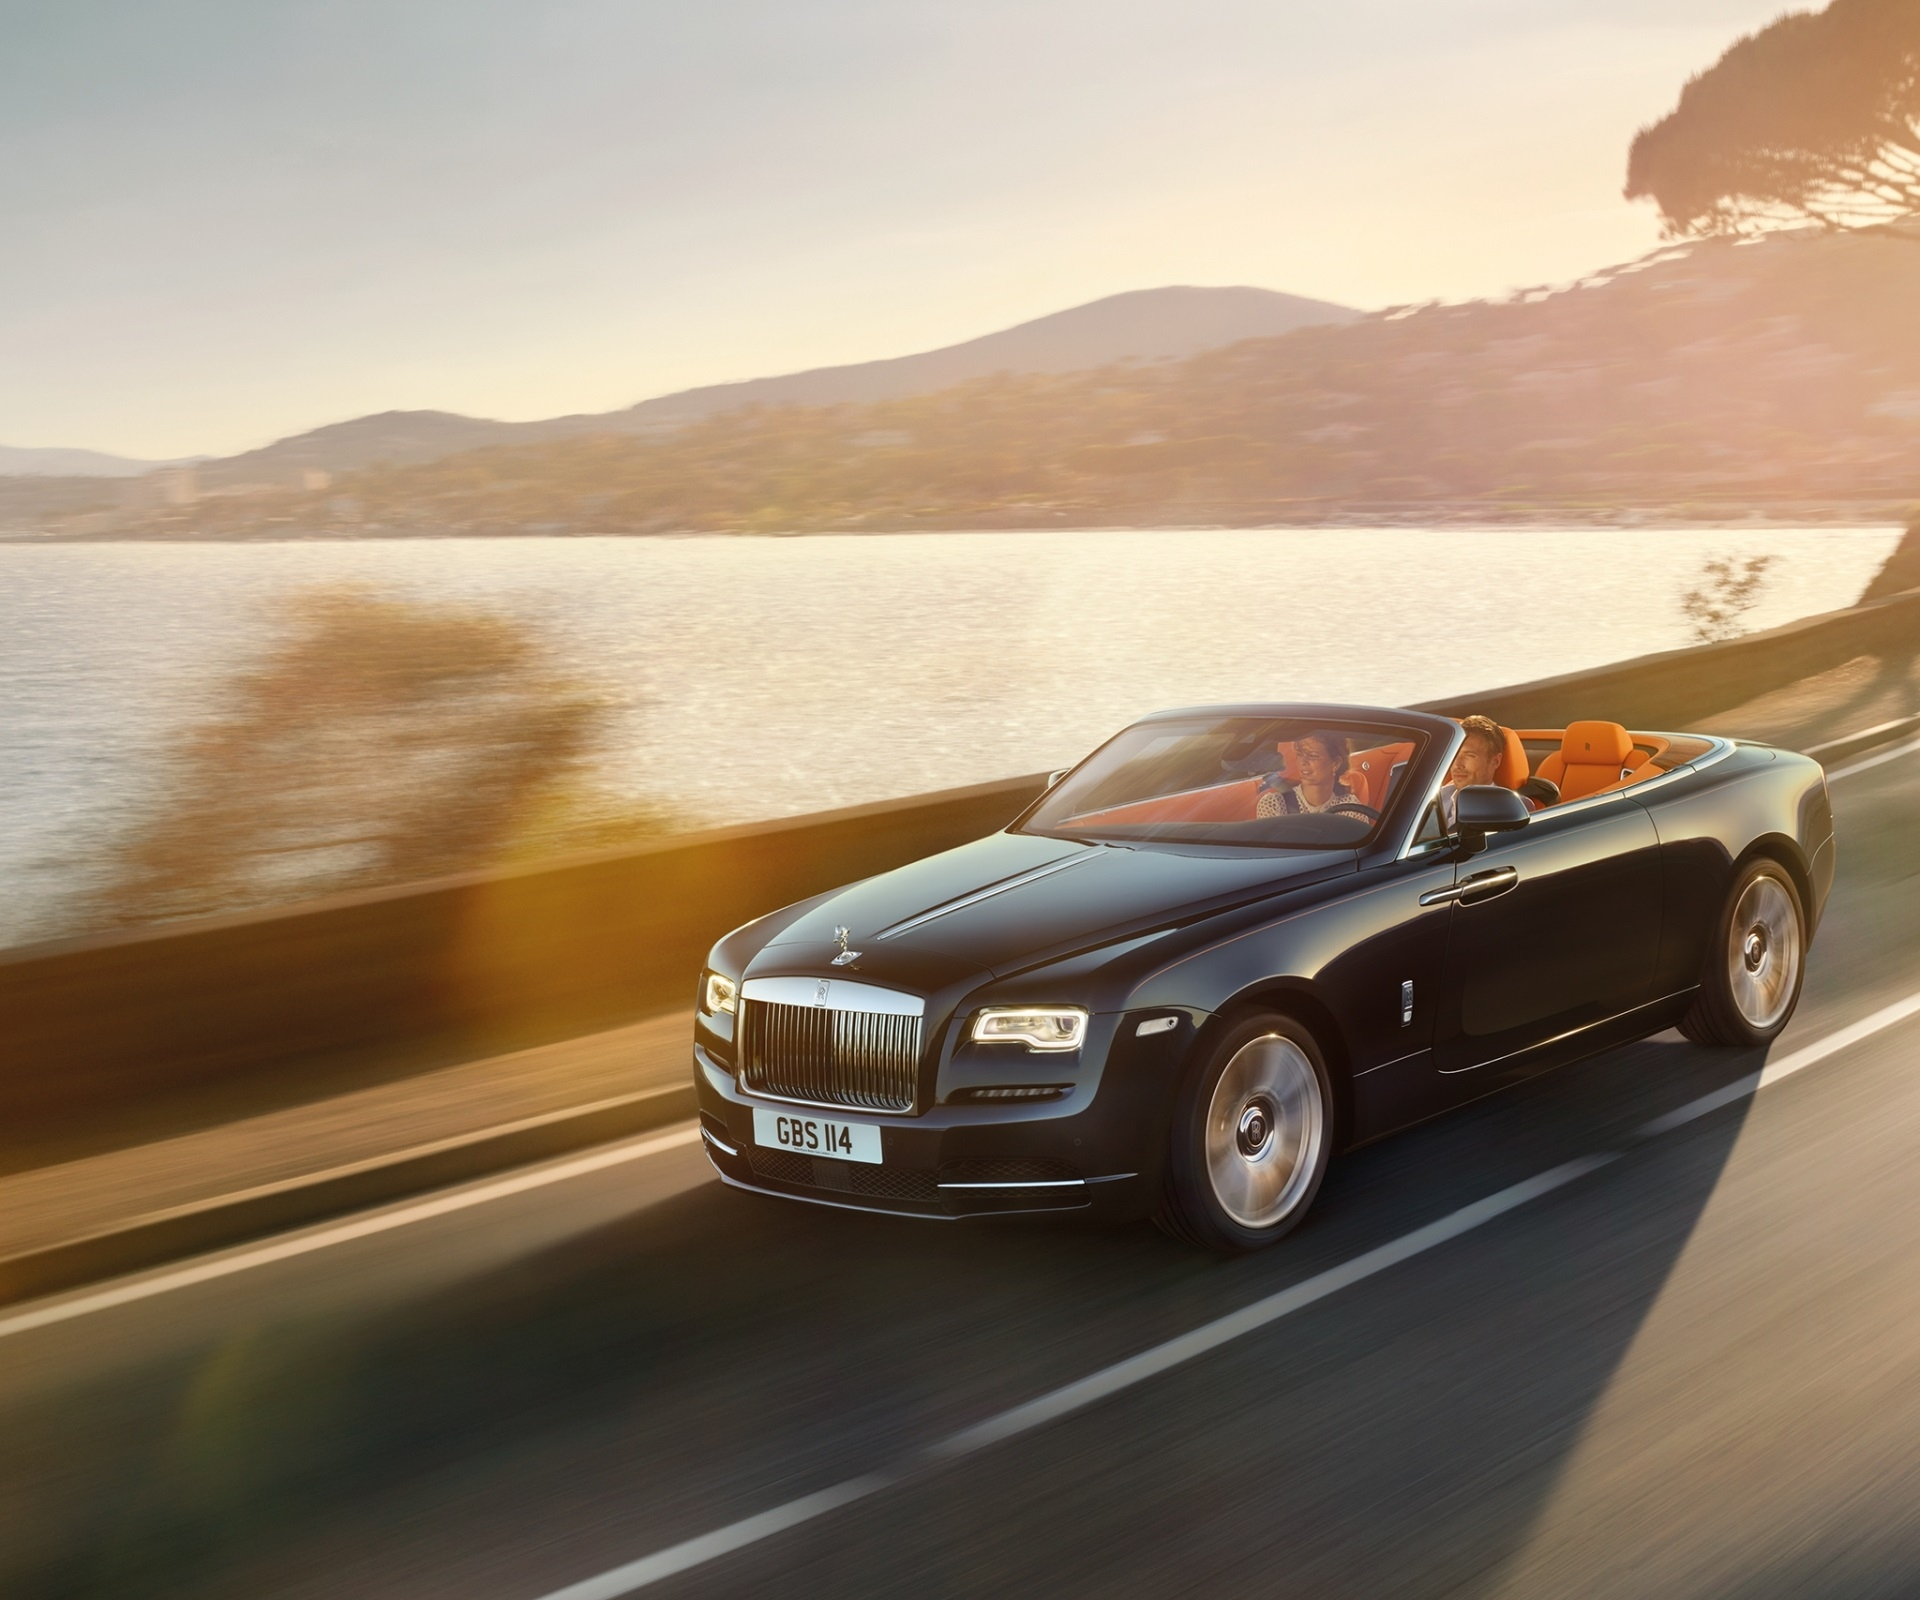 The Rolls-Royce Dawn shines light on a new day in luxury vehicles.